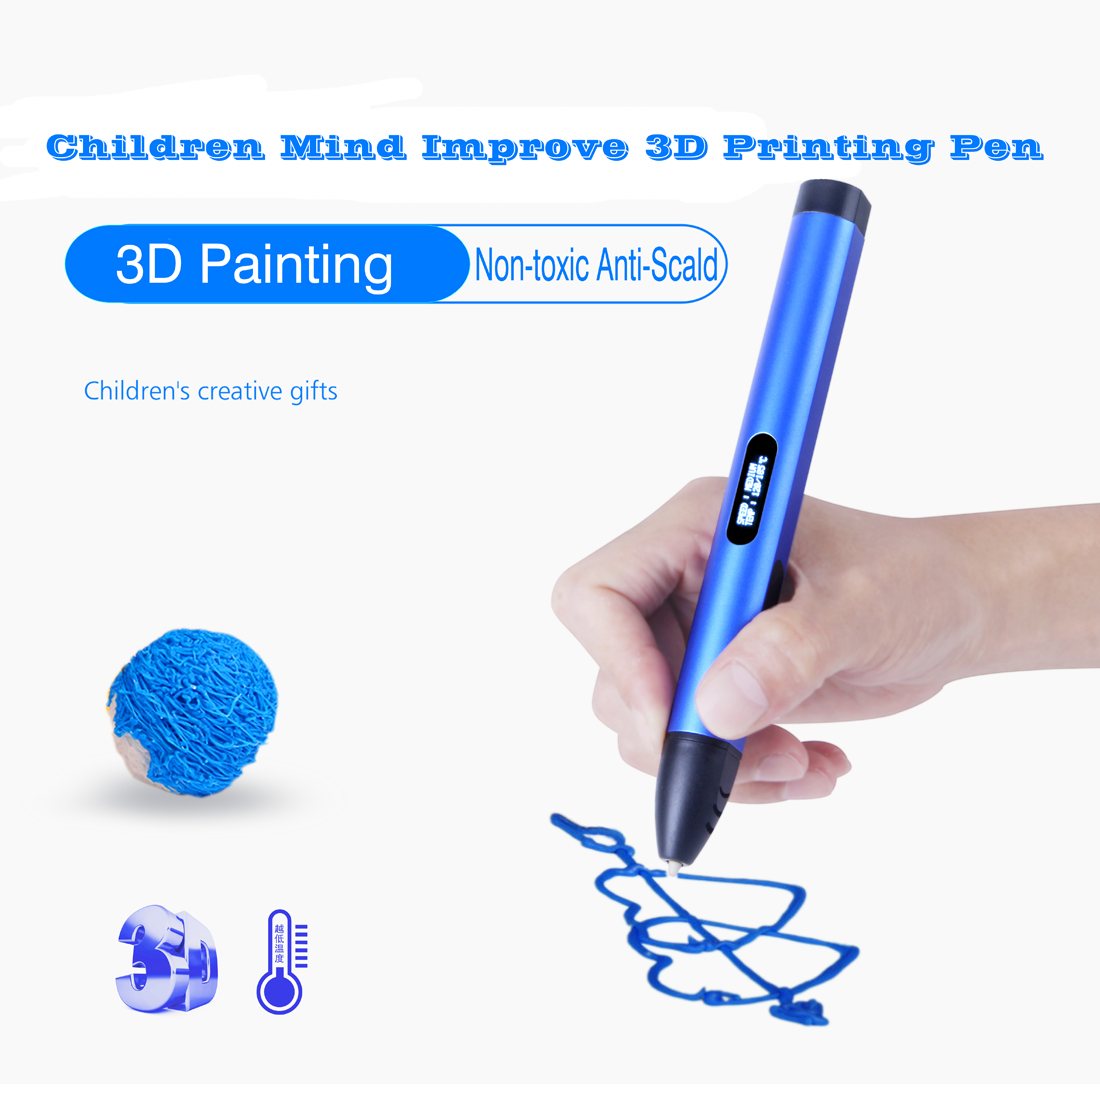 OLED Display 3D Printer Pen USB Rechargeable Safe Harmless Drawing Pen for Kids Students 3D Printing Pen for Kids